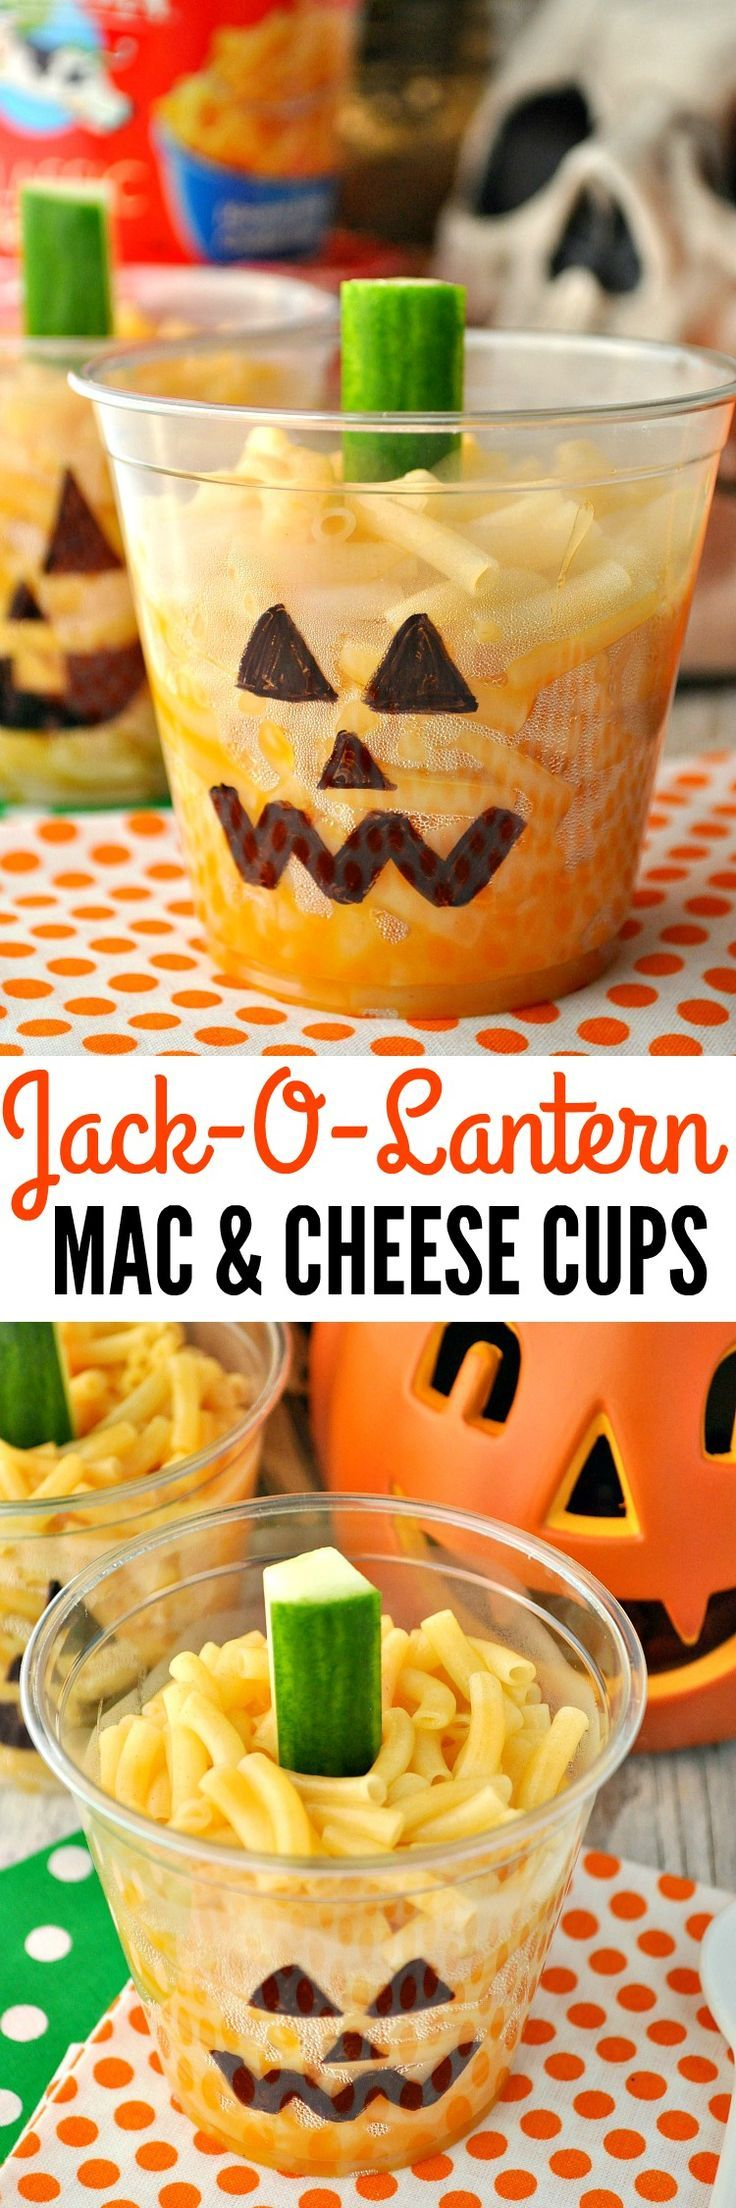 Jack-O-Lantern Mac and Cheese Cups | Recipe | Easy halloween ...